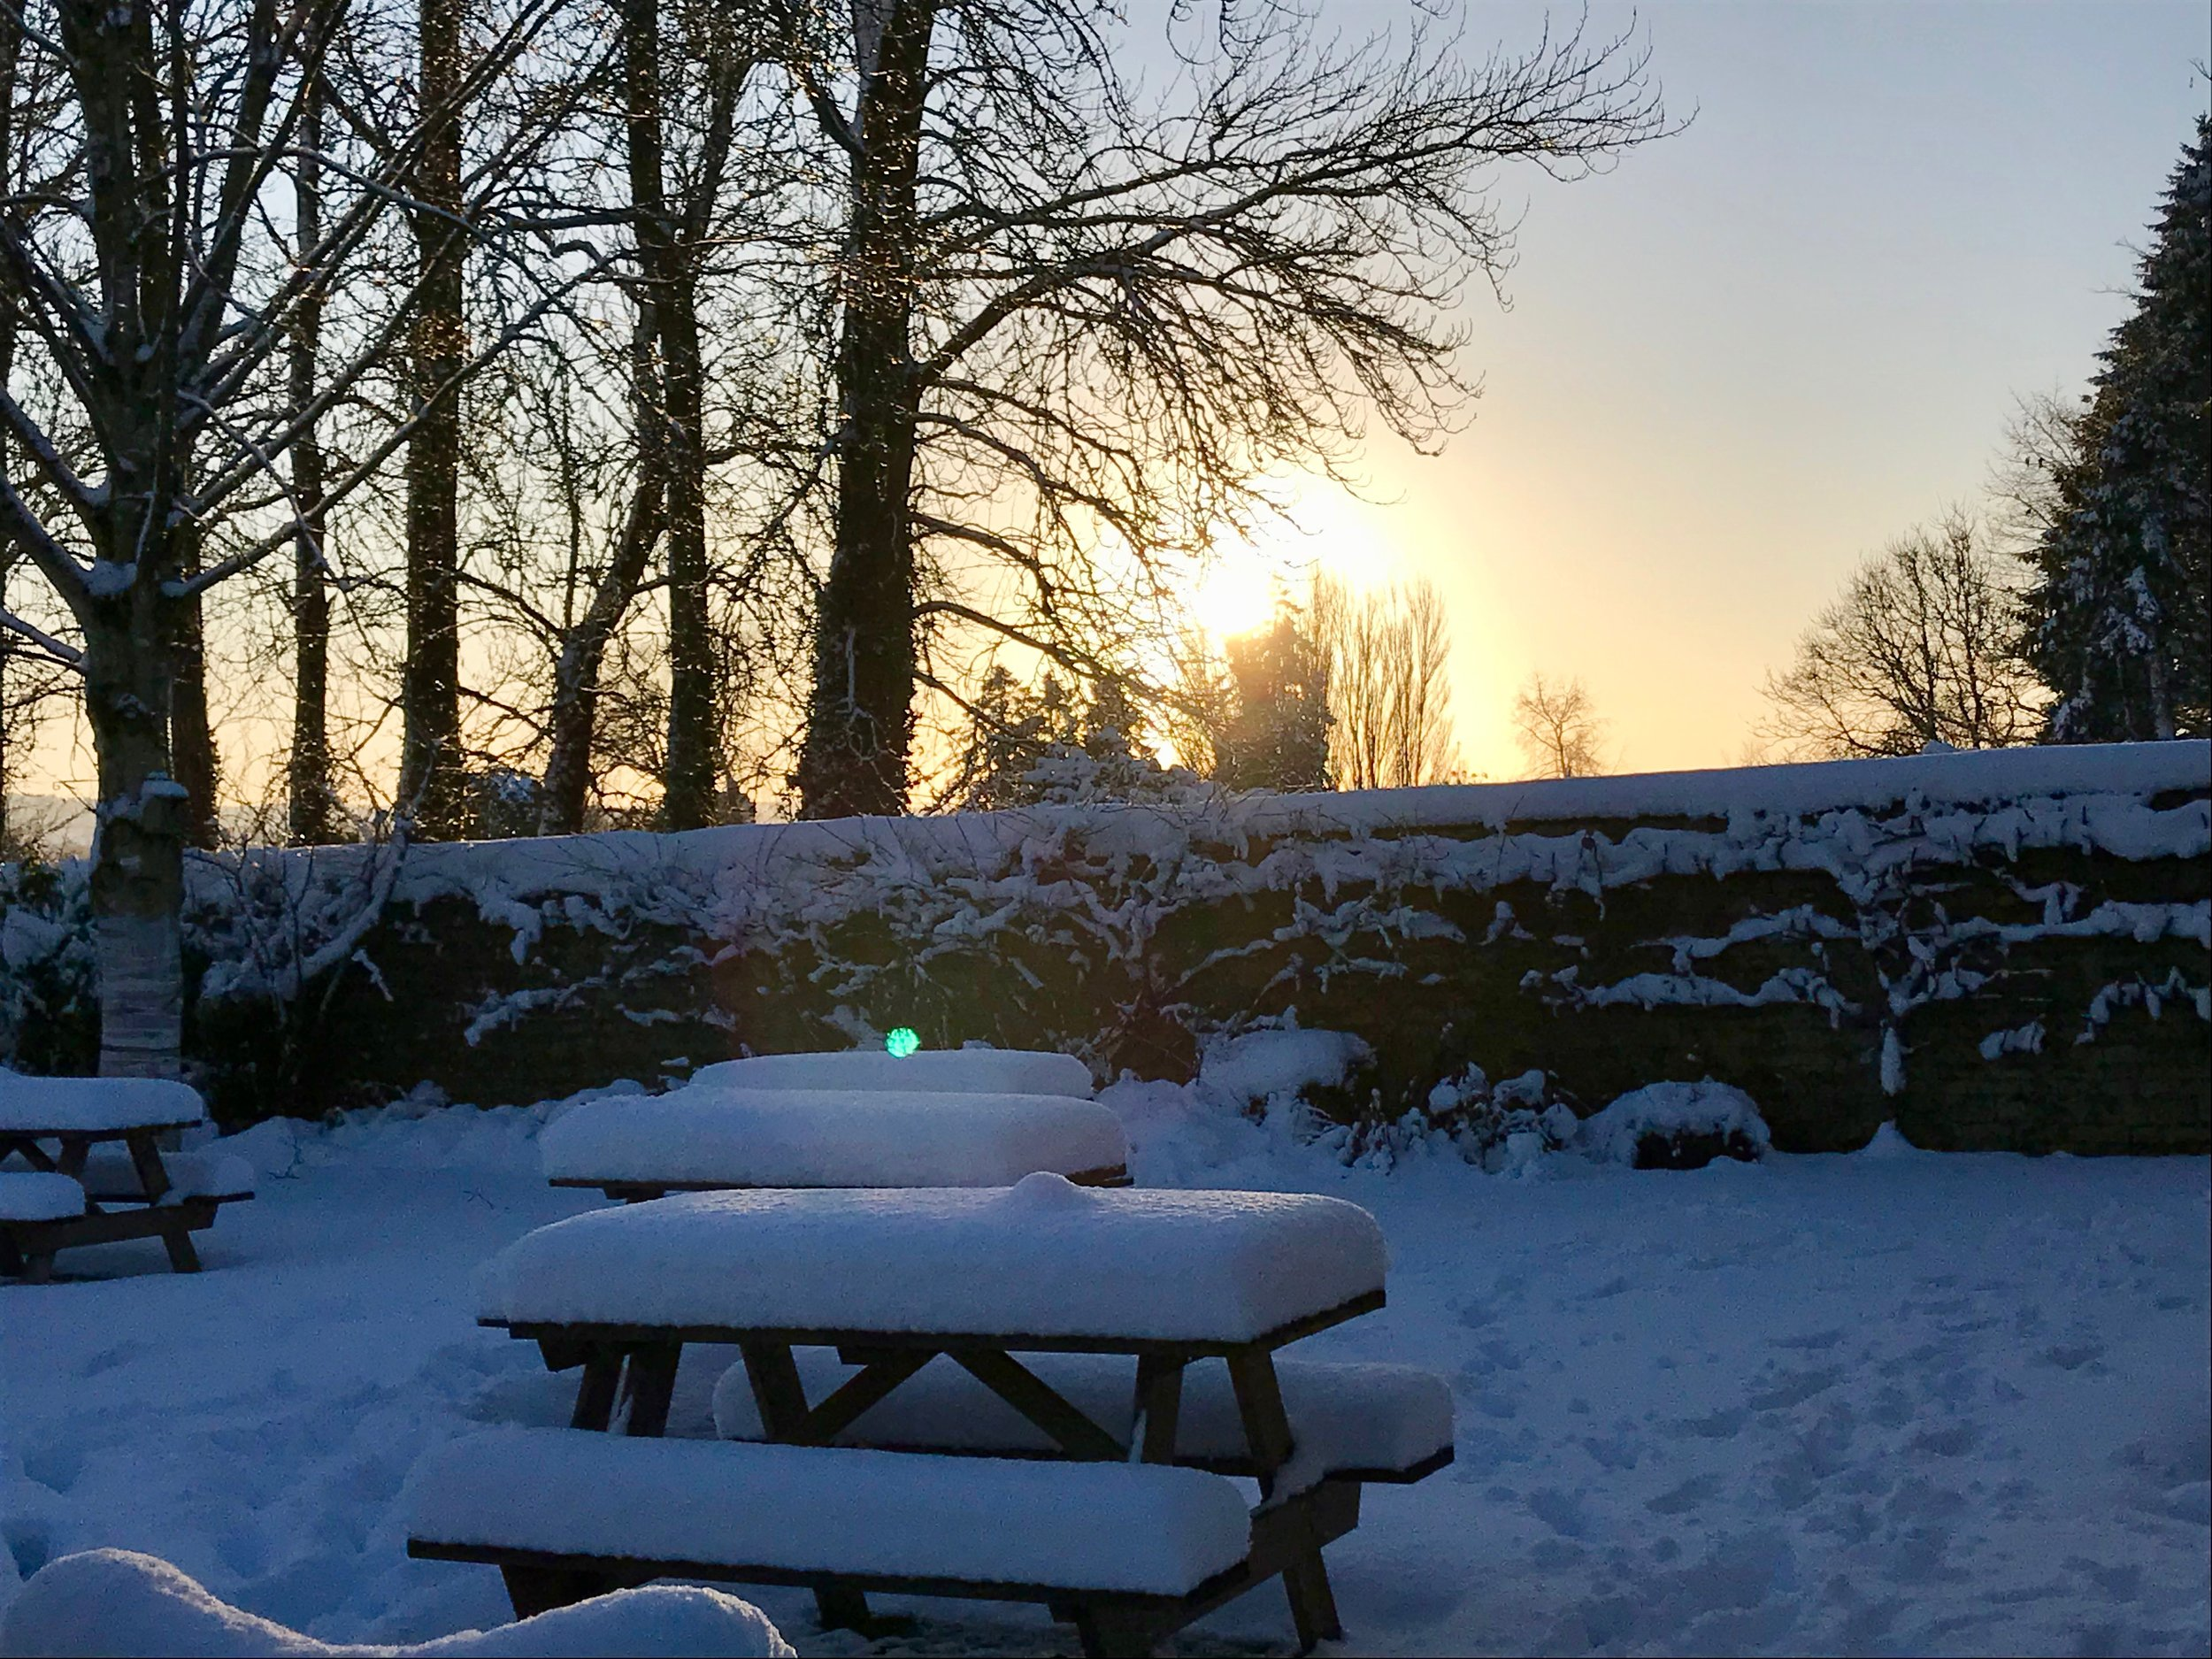 Bit chilly for a pint in the beer garden